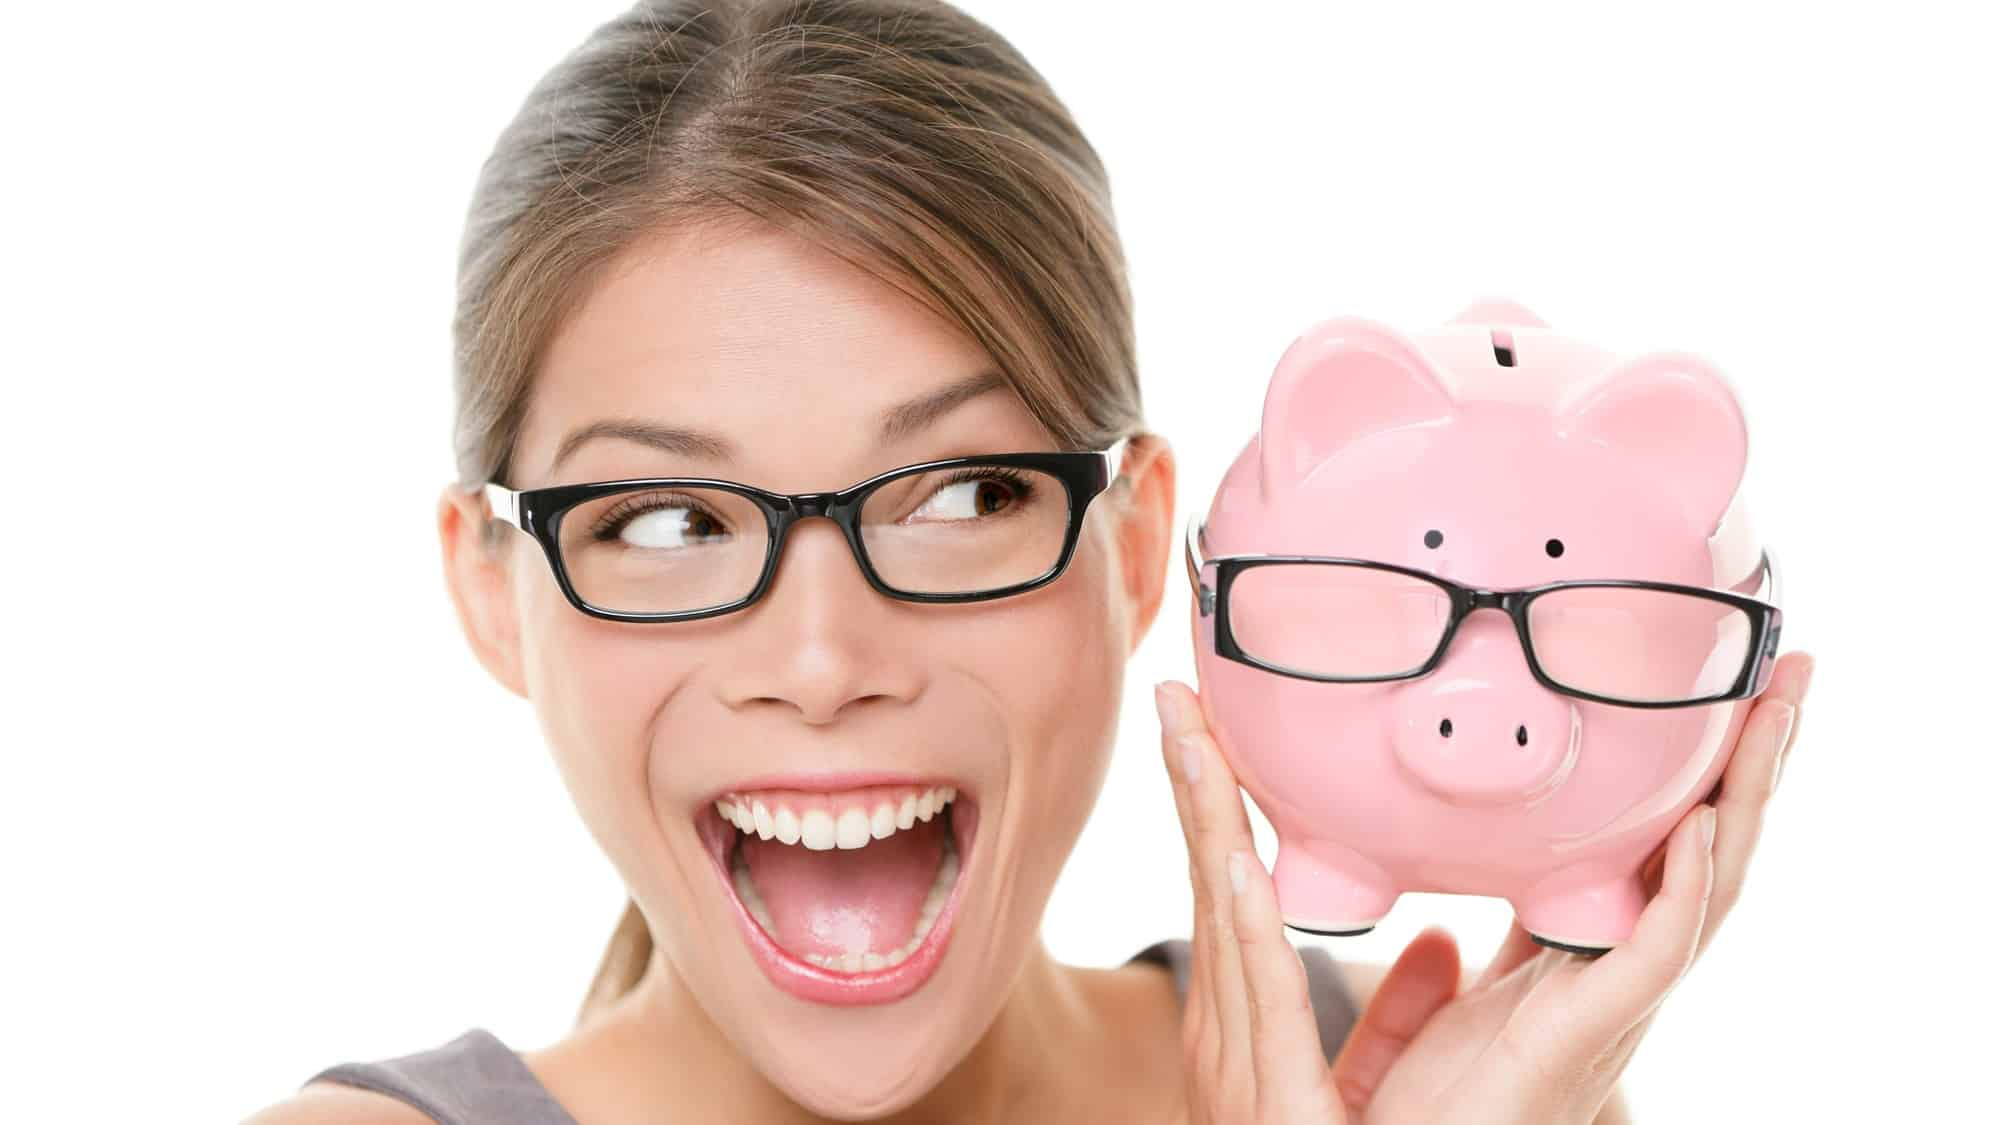 rising asx share price represented by smiling woman holding piggy bank